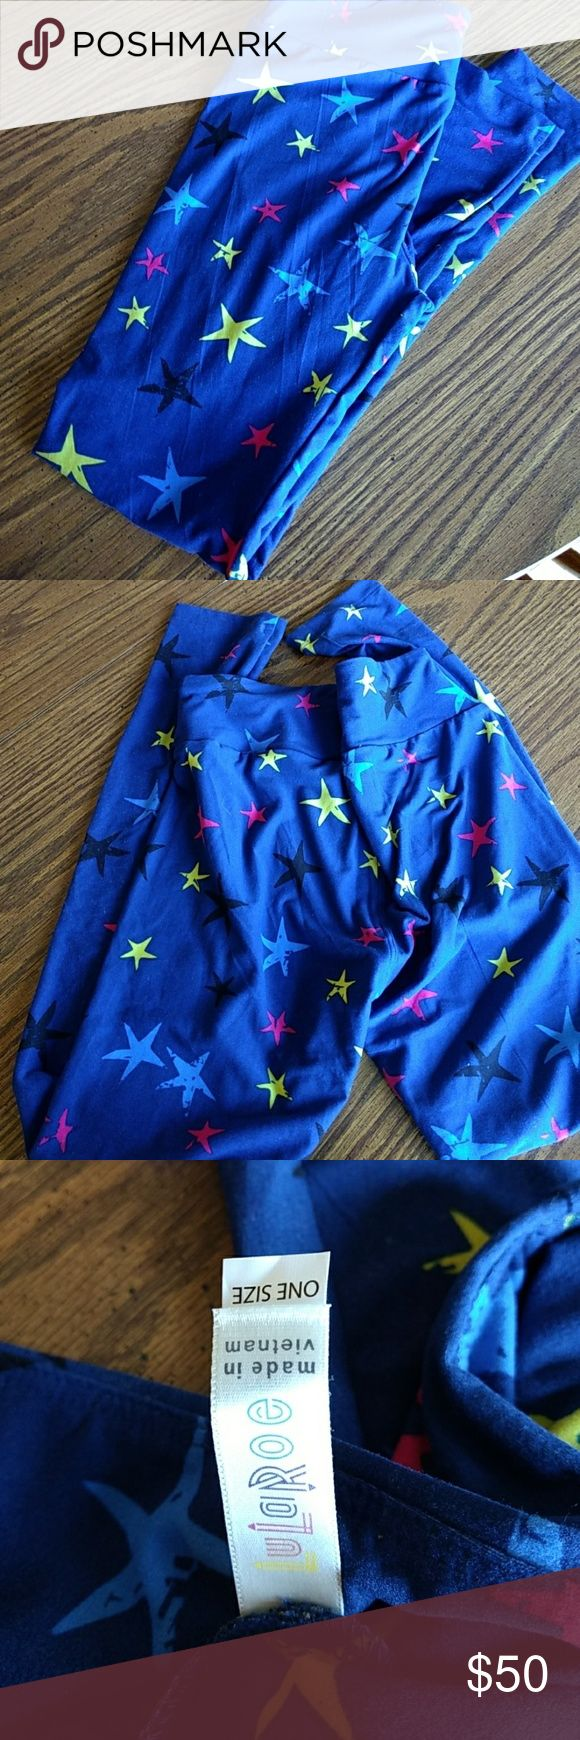 Lularoe STAR Leggings NWOT Royal blue with yellow, pink, black and light blue stars. Tag says One Size, but I would guess they're more like an 8. LuLaRoe Pants Leggings